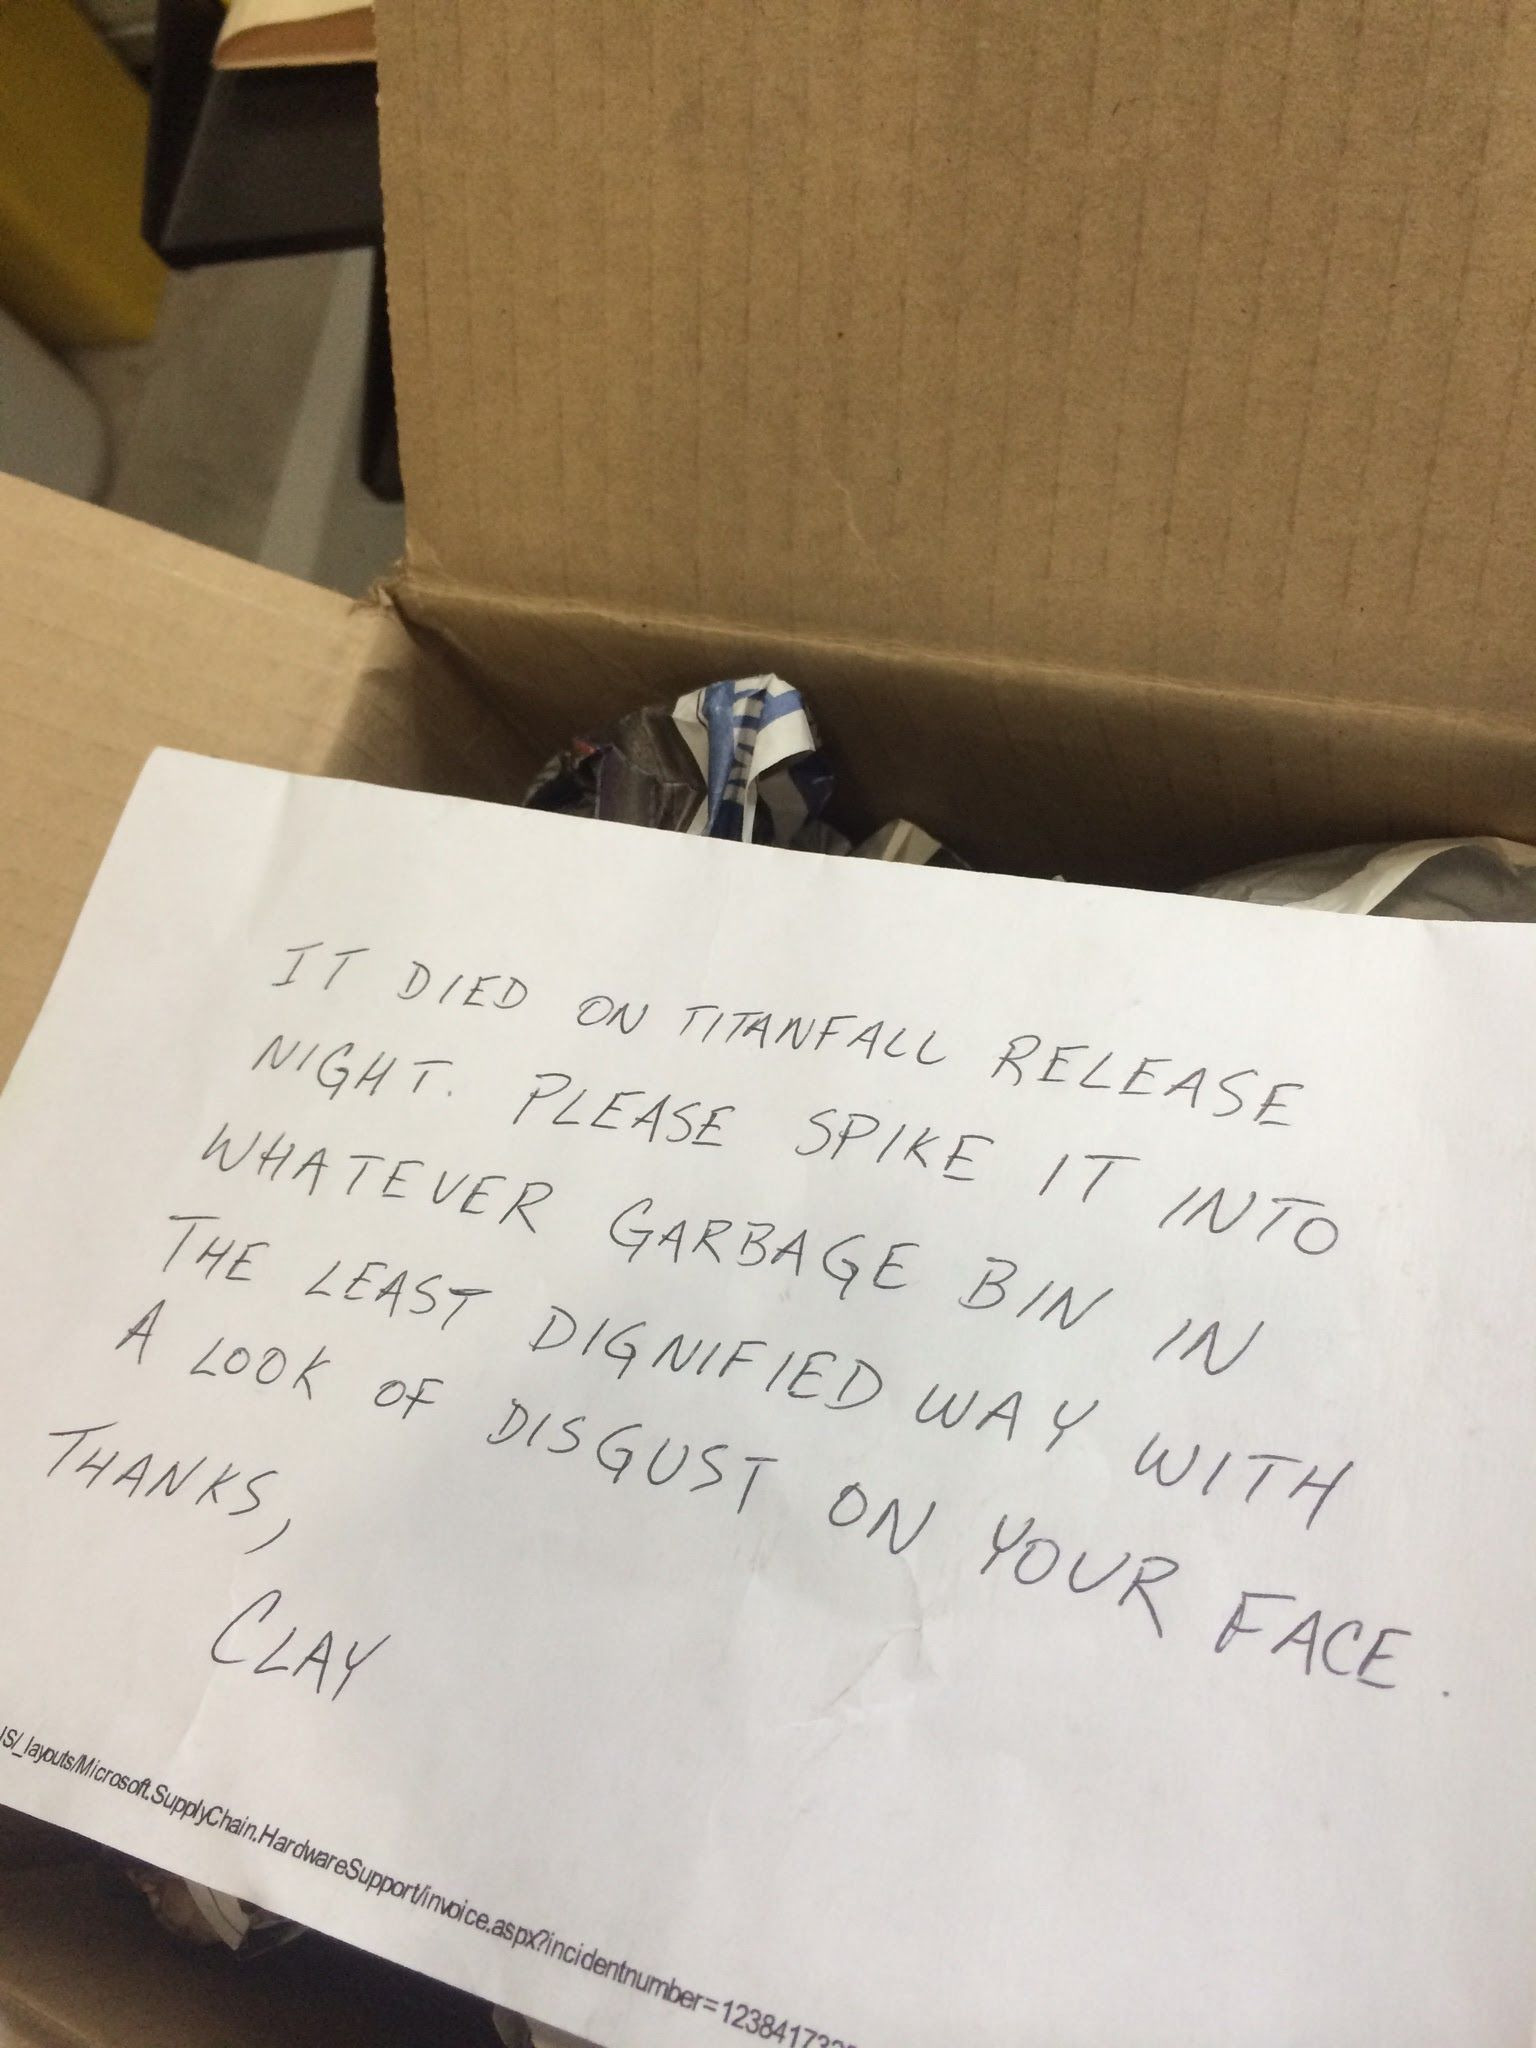 I worked in Microsoft returns a few years ago. Someone left this in the returns box.